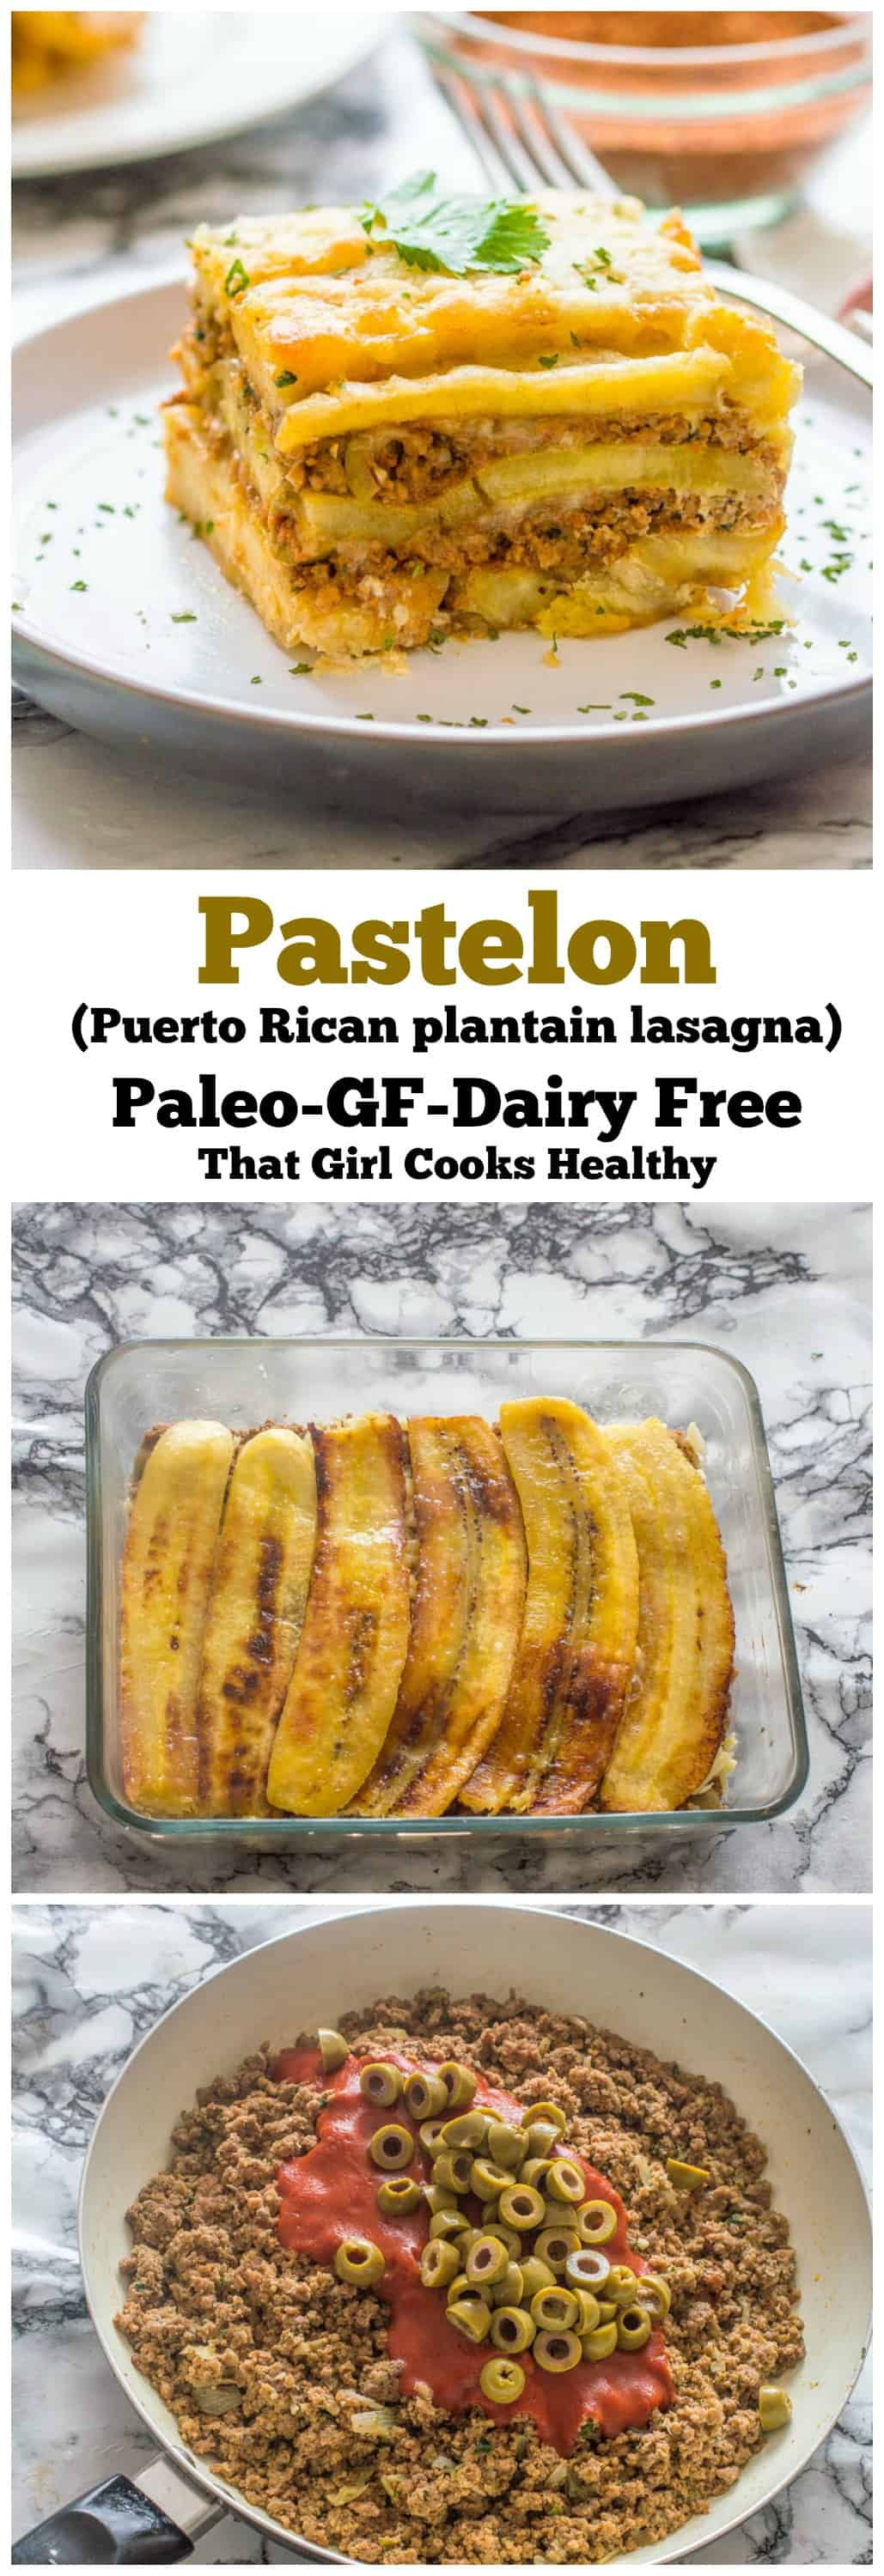 Pastelon Puerto Rican sweet plantain lasagna that paleo, gluten free and dairy free